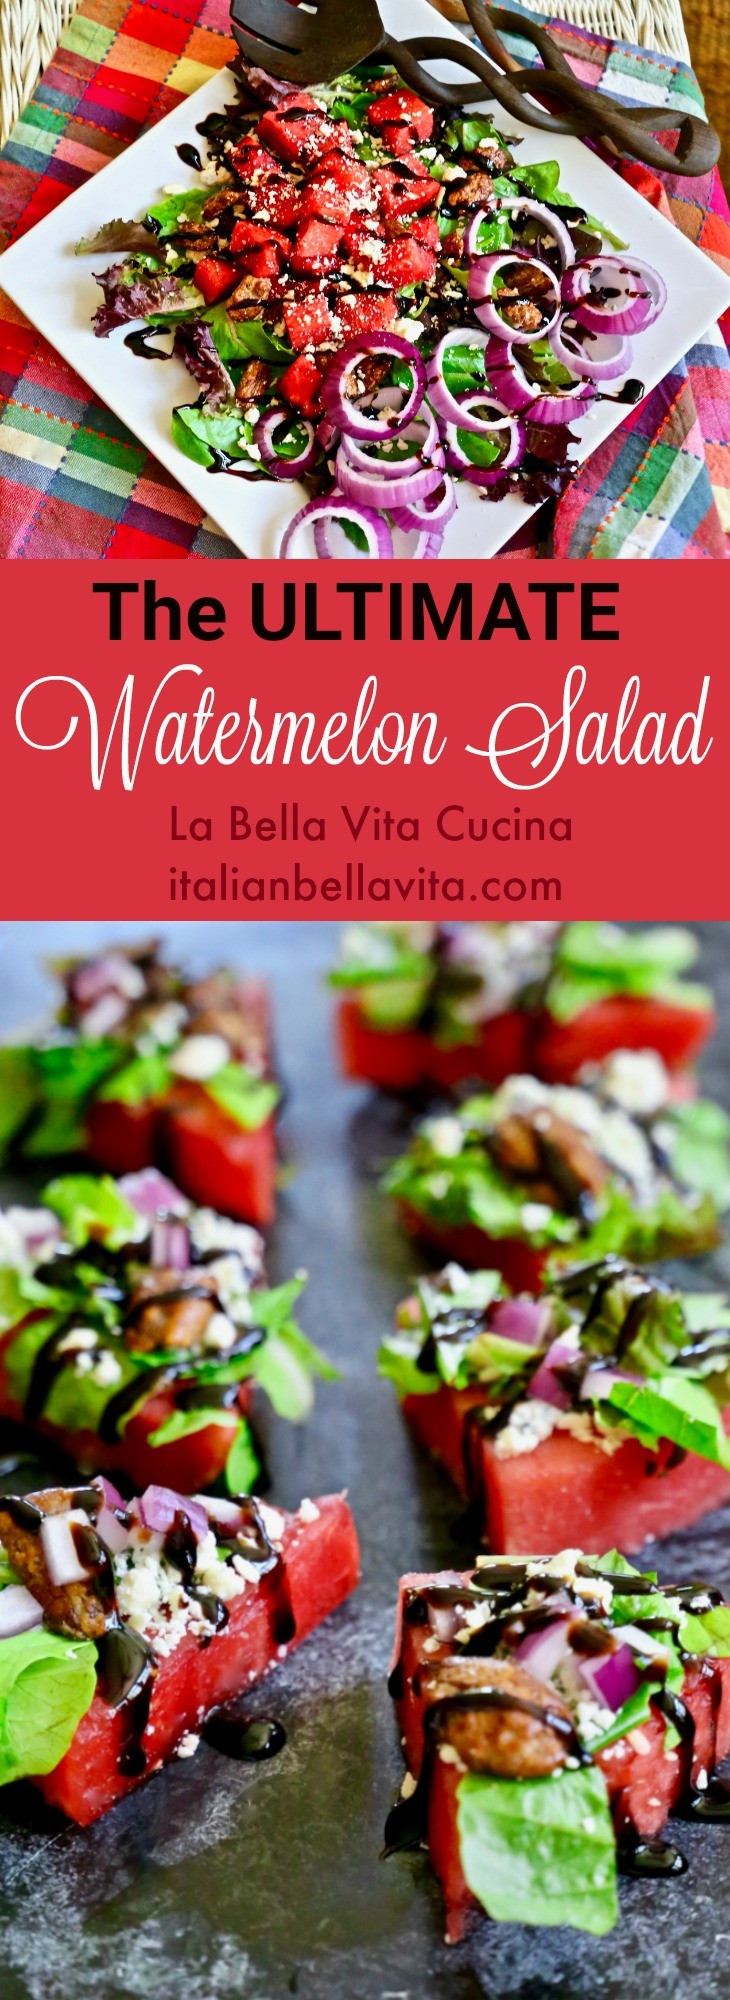 The Most Incredible Watermelon Salad